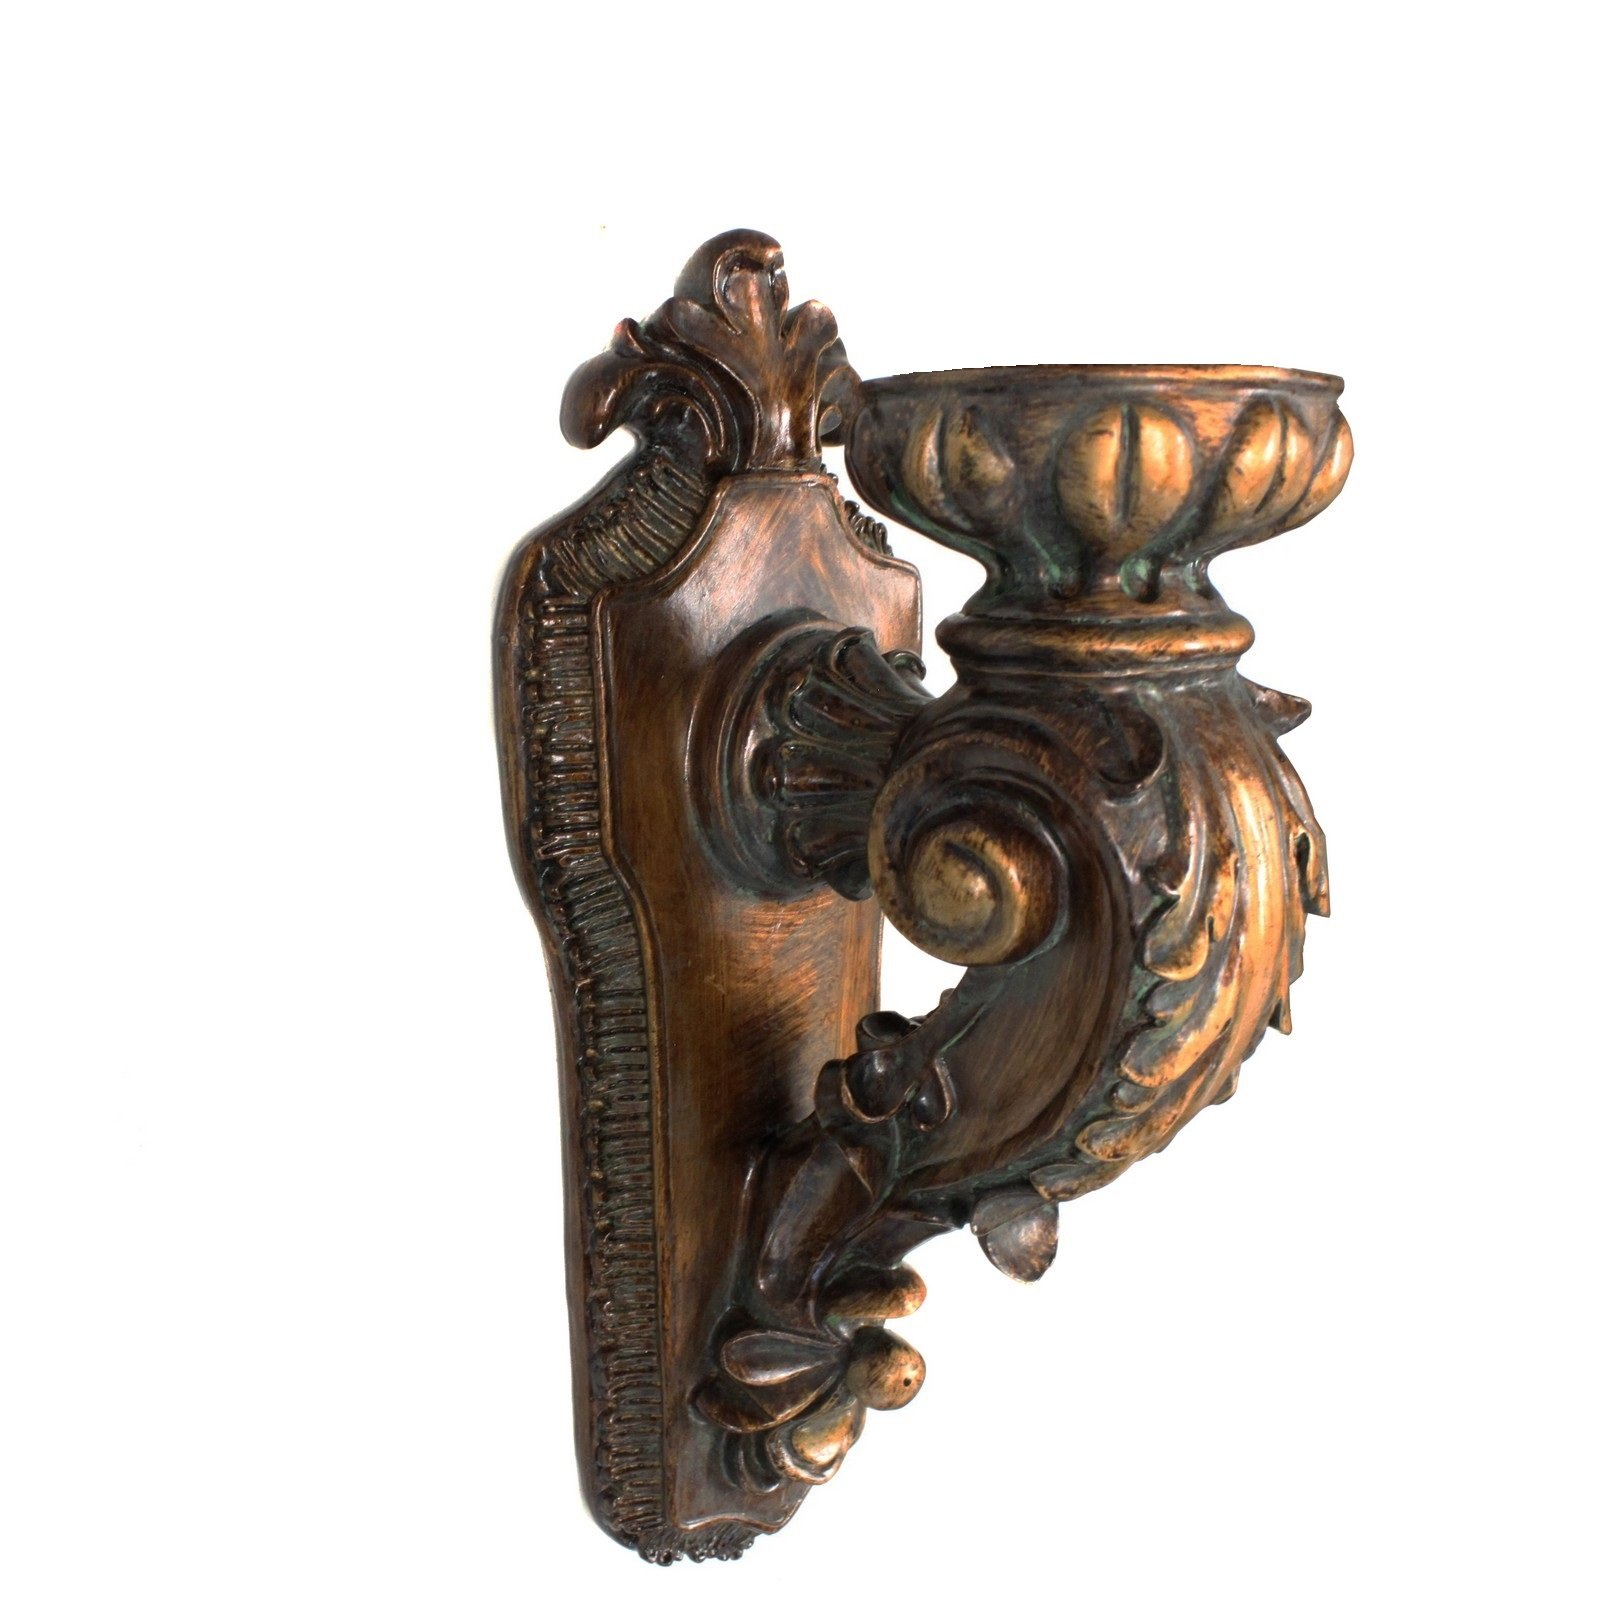 EcWorld Enterprises 7705337 Antique Replica Rusted Wall Sconce Candle Holder